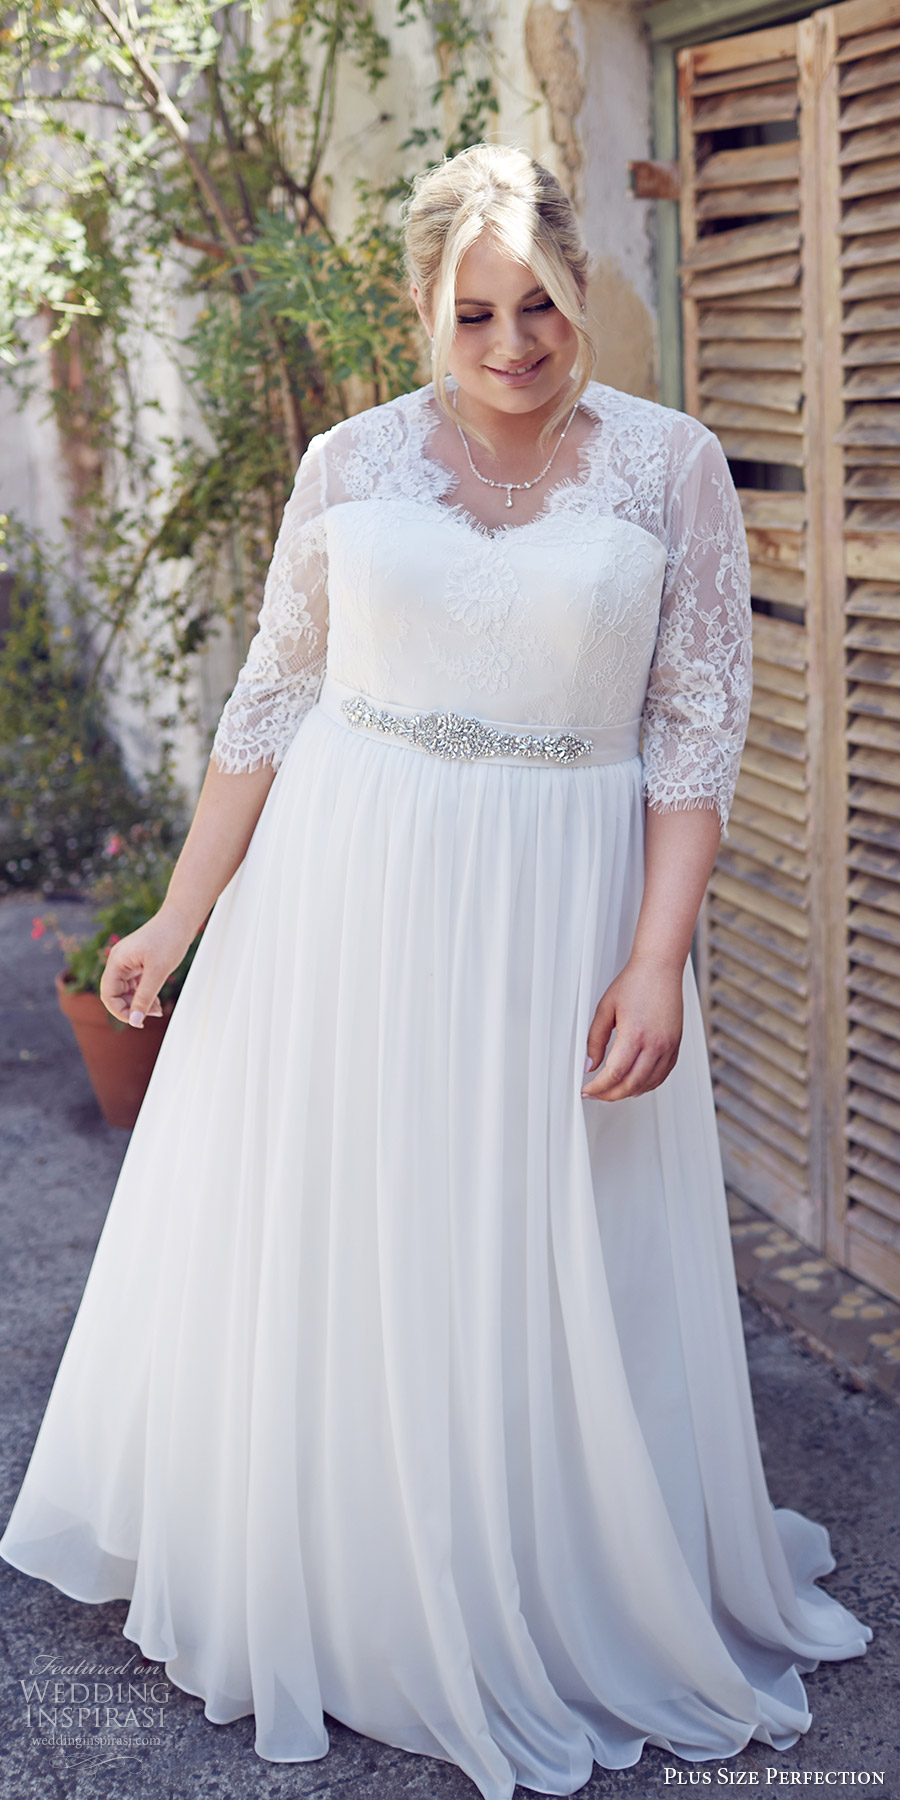 Fullsize Of Wedding Dress Plus Size